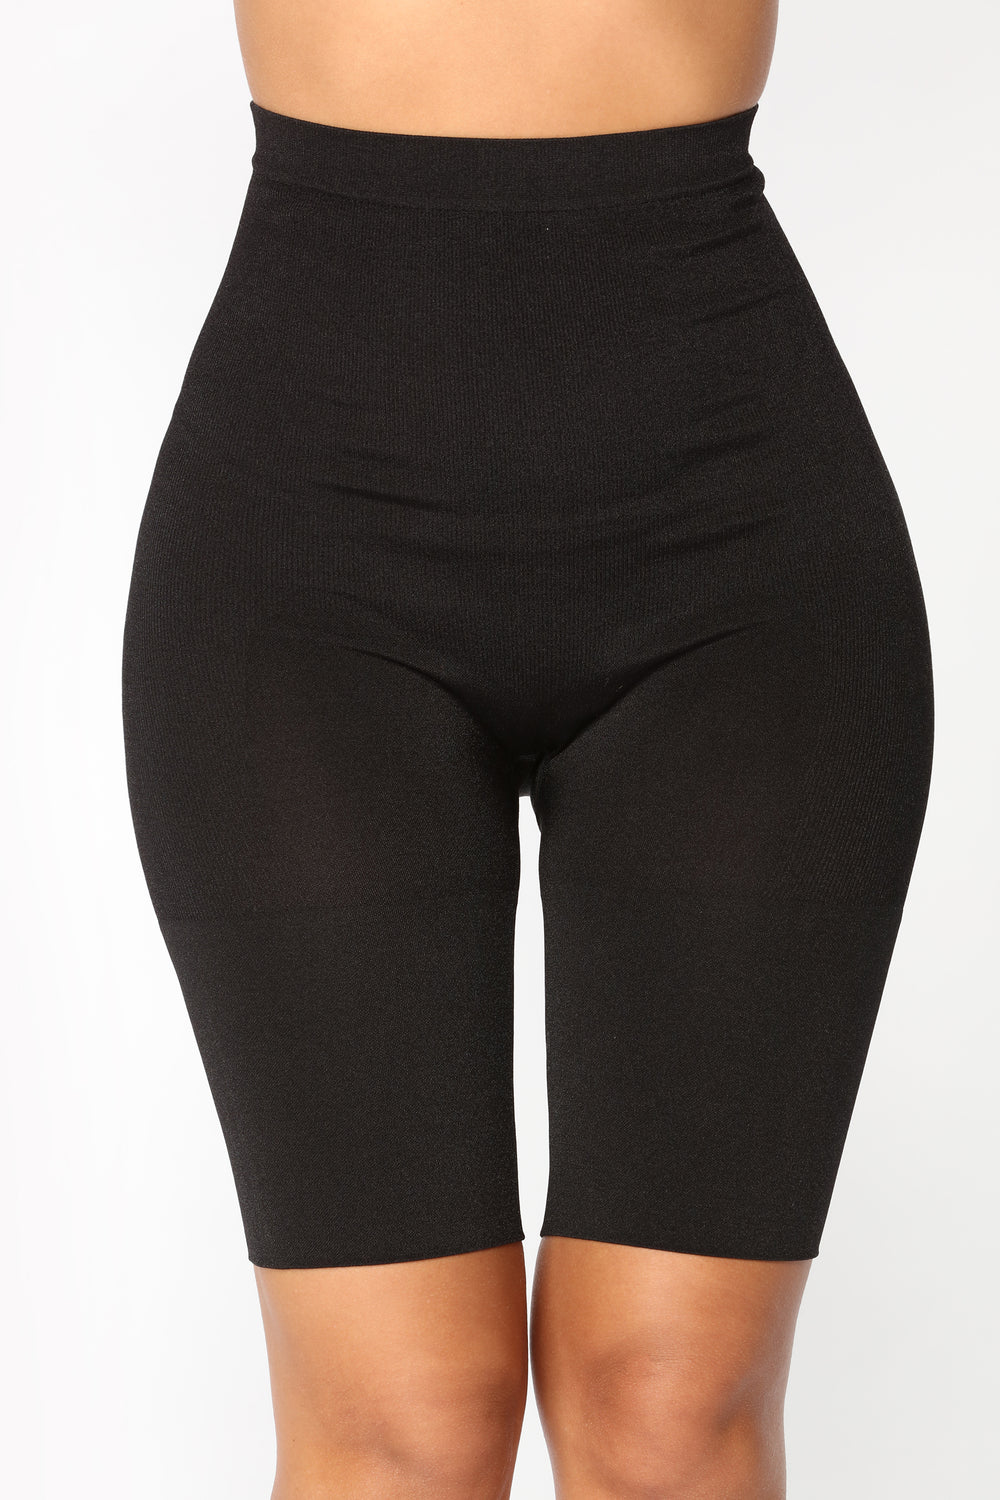 Keep It On The Low Short Shapewear - Black